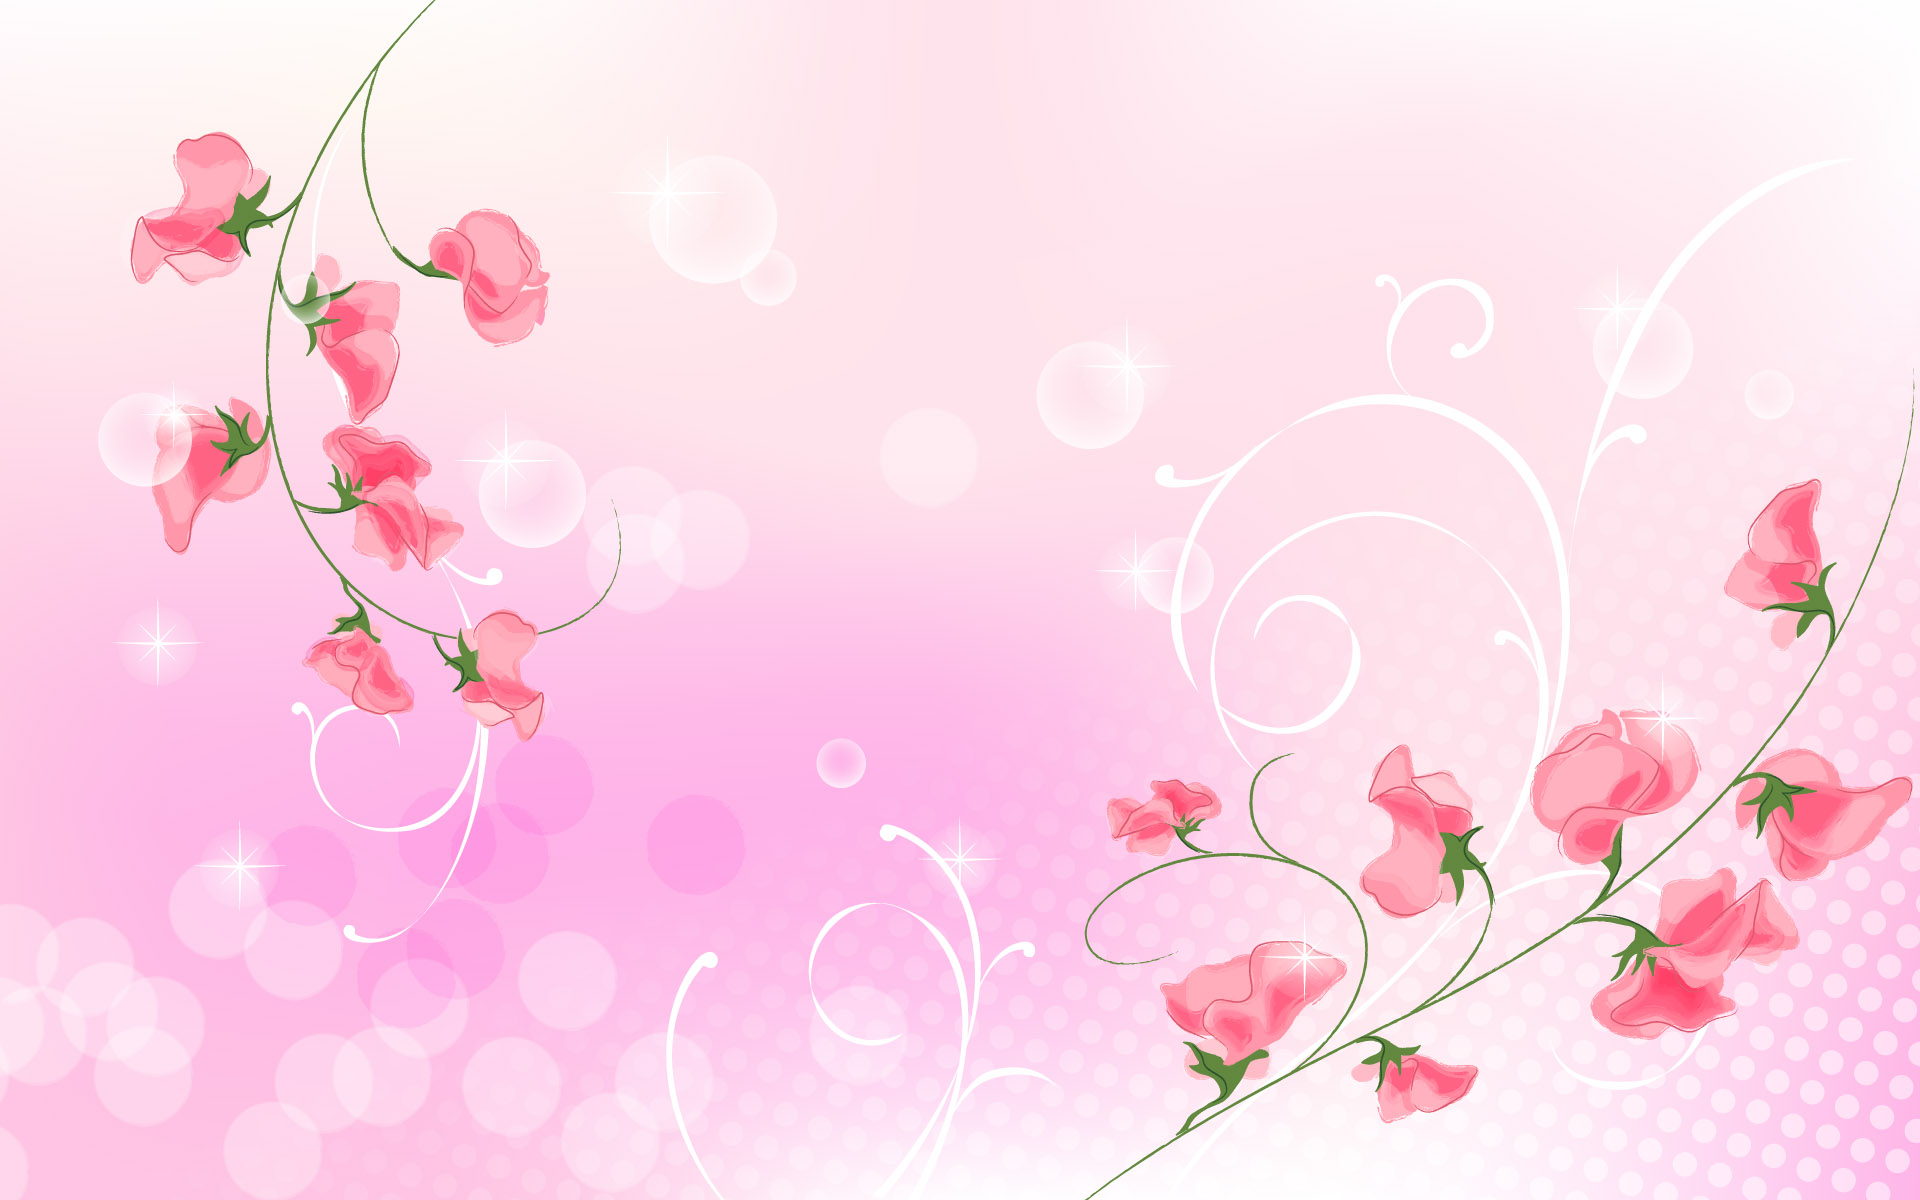 The Wallpaper Two Red Branches Of Flower And Light Pink Background